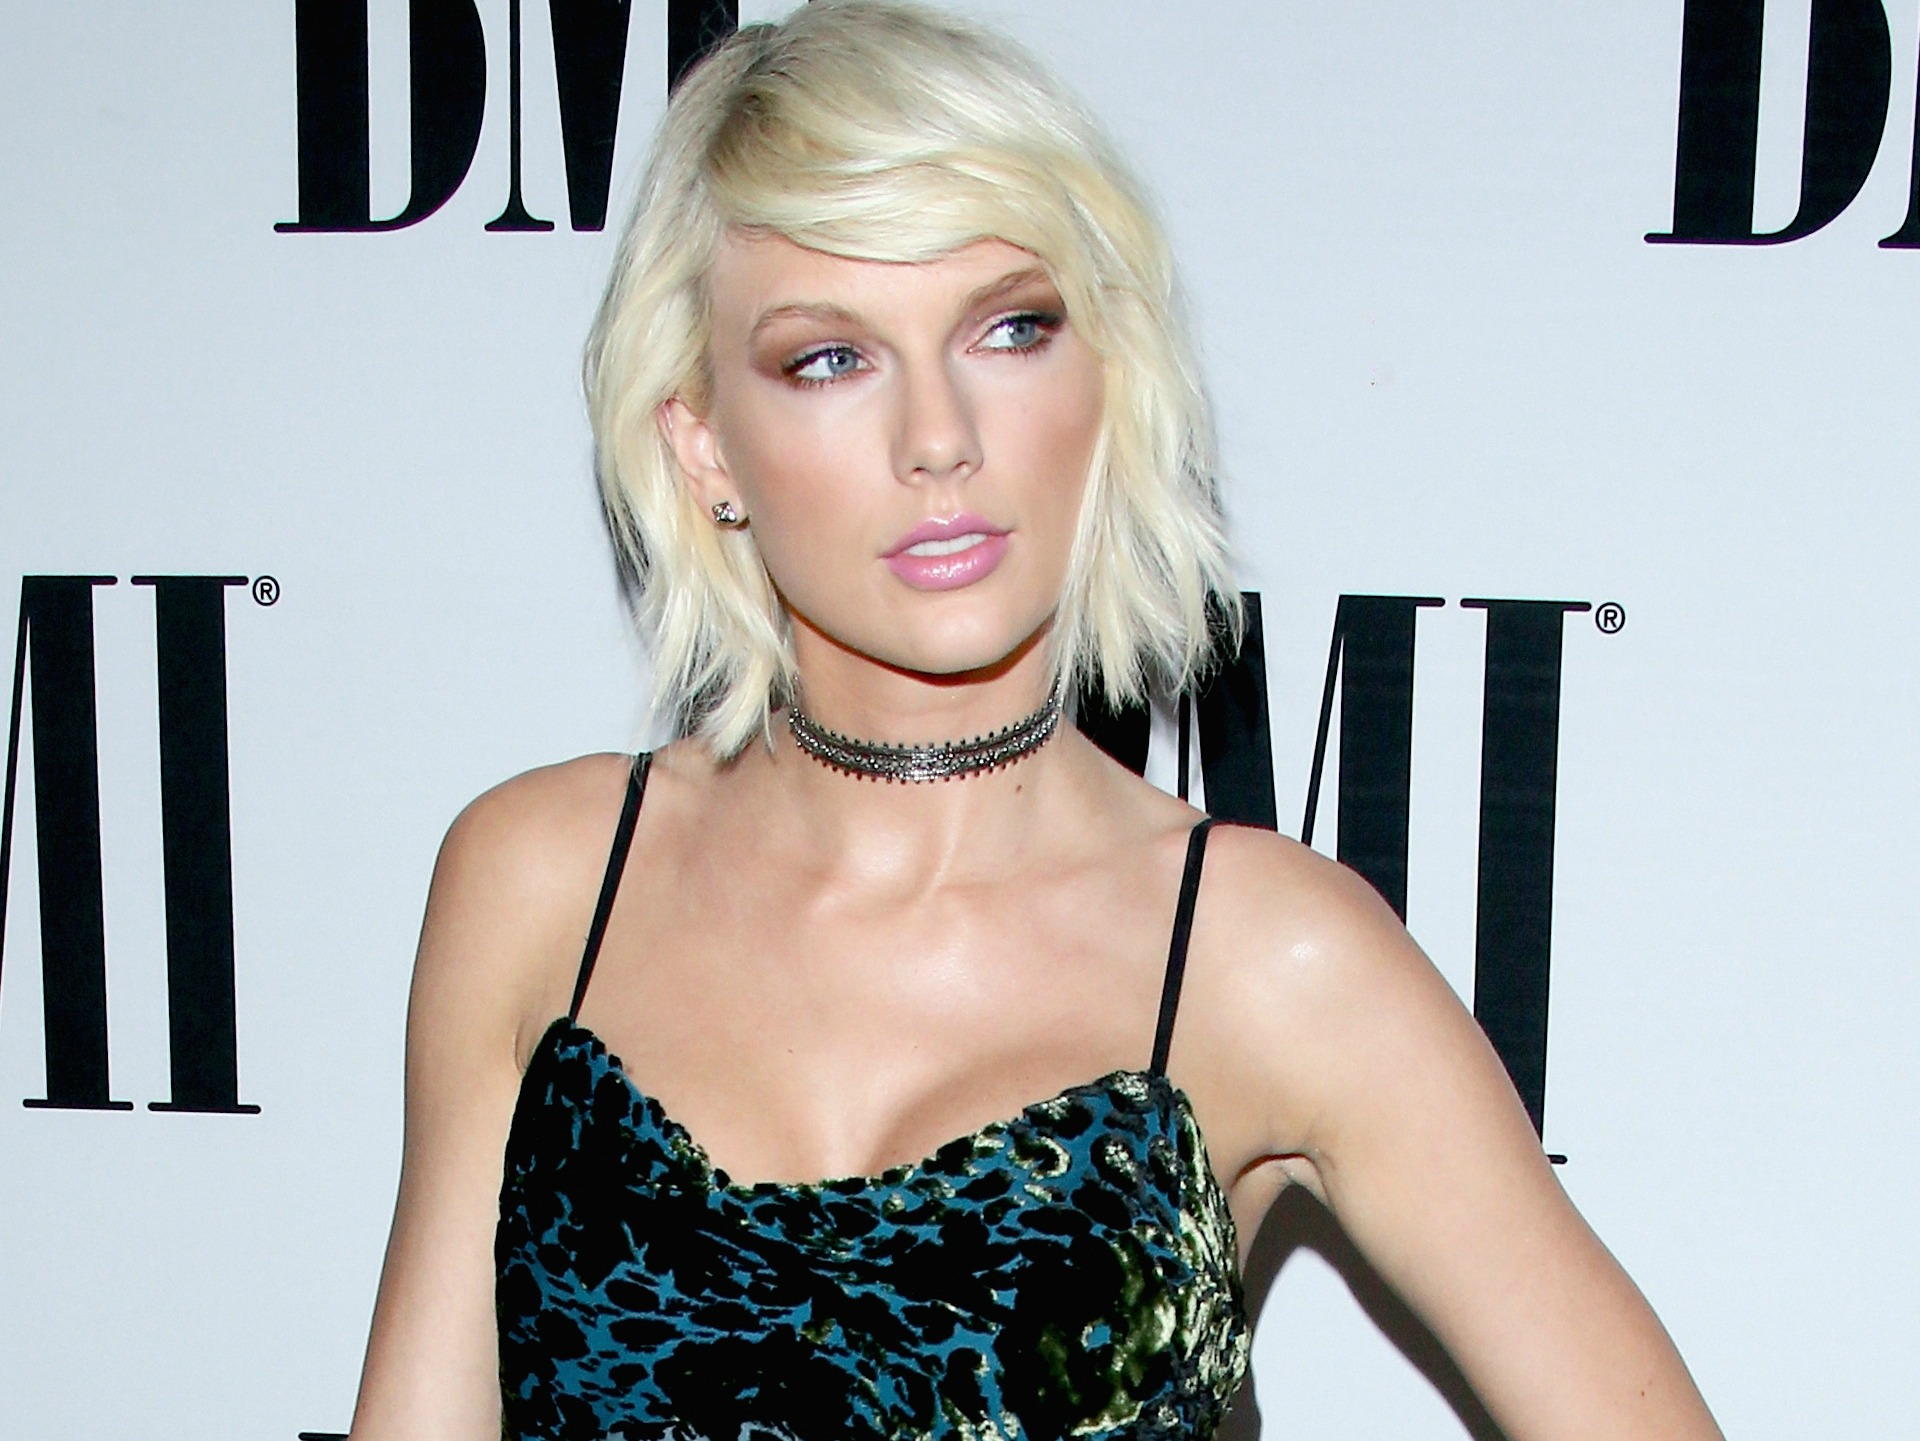 Taylor Swift Donates to Sexual Assault Victims